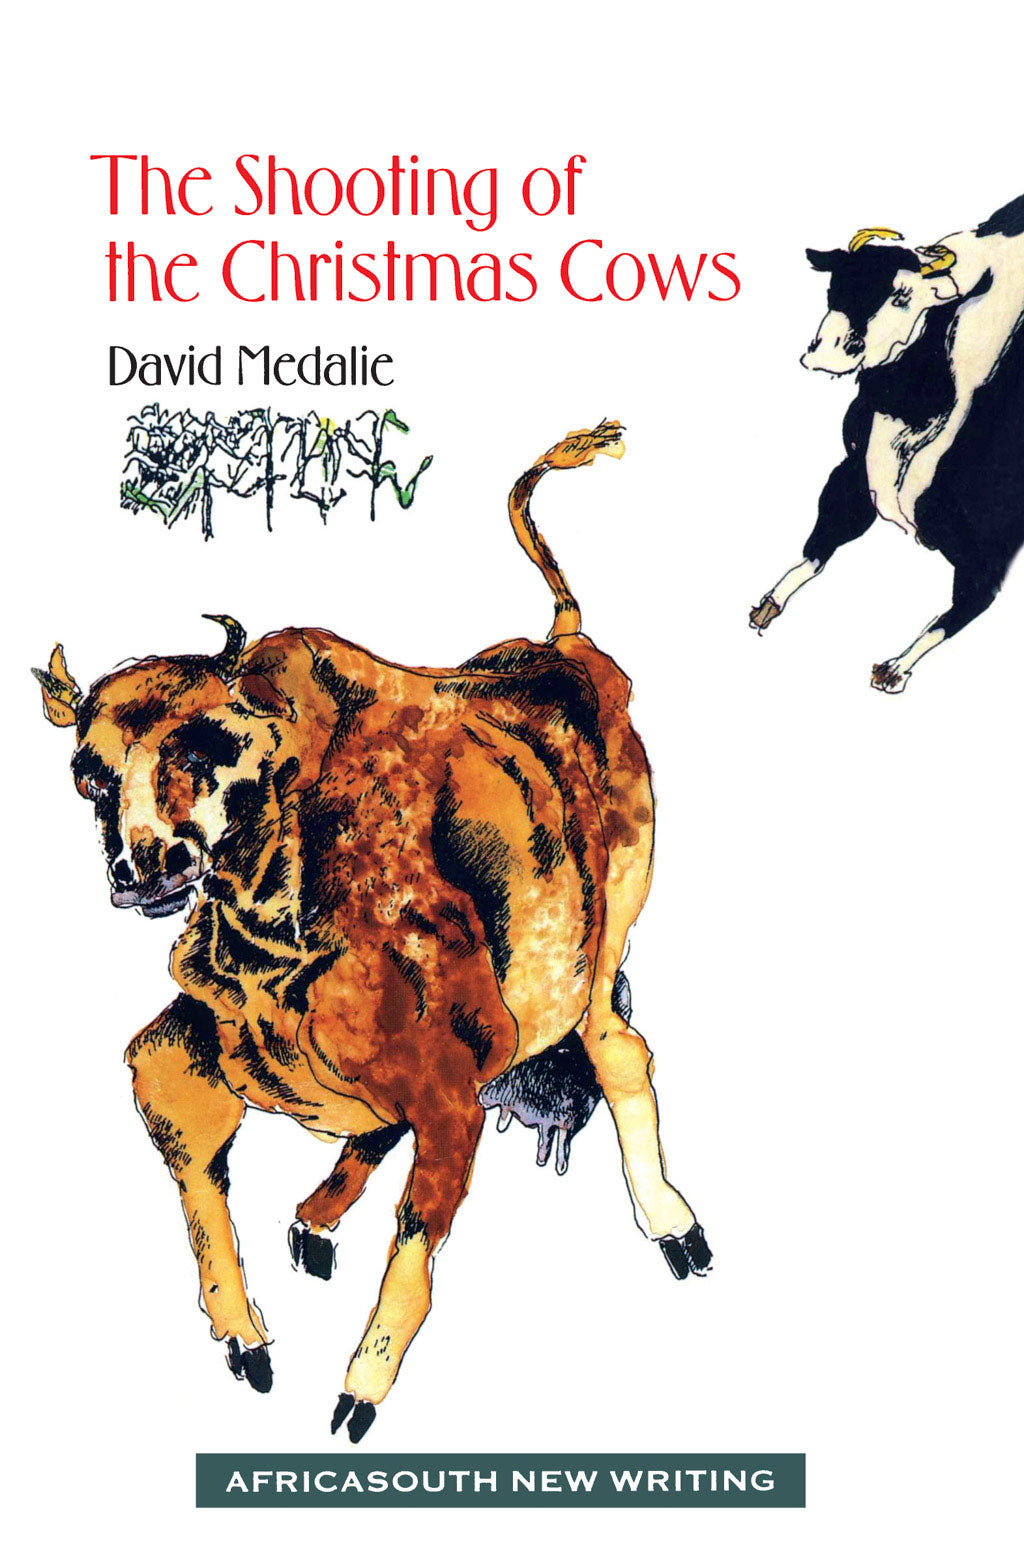 THE SHOOTING OF THE CHRISTMAS COWS